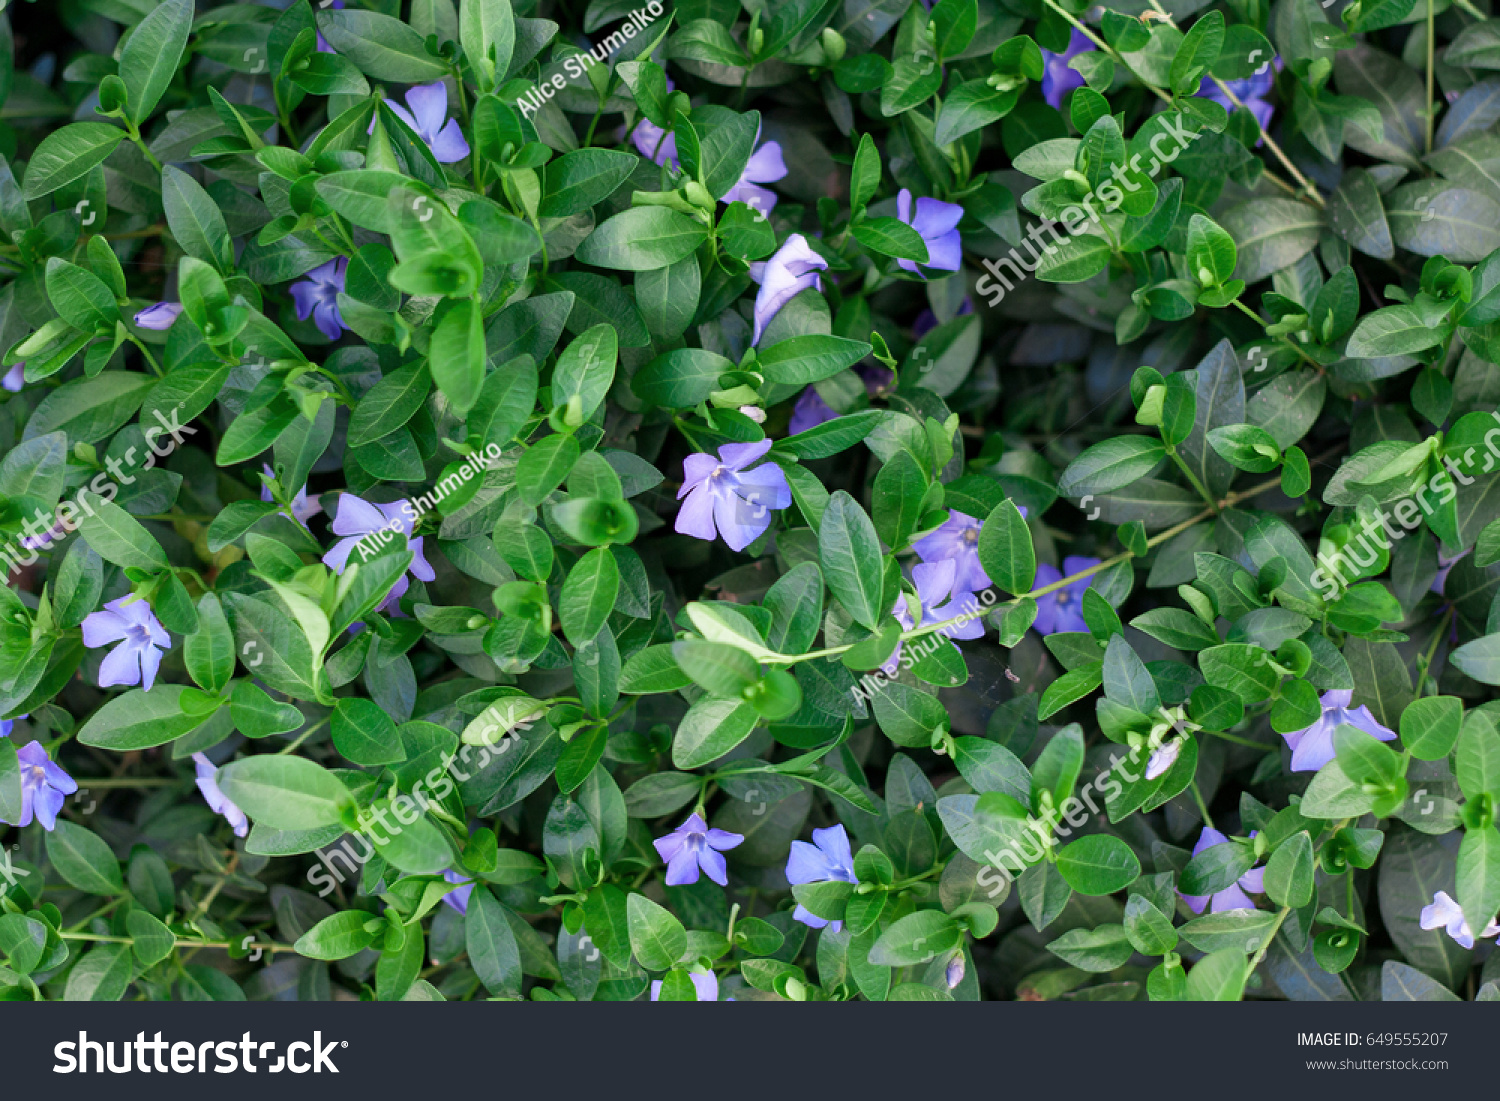 Periwinkle plant green leaves blue flowers stock photo royalty free periwinkle plant with green leaves and blue flowers izmirmasajfo